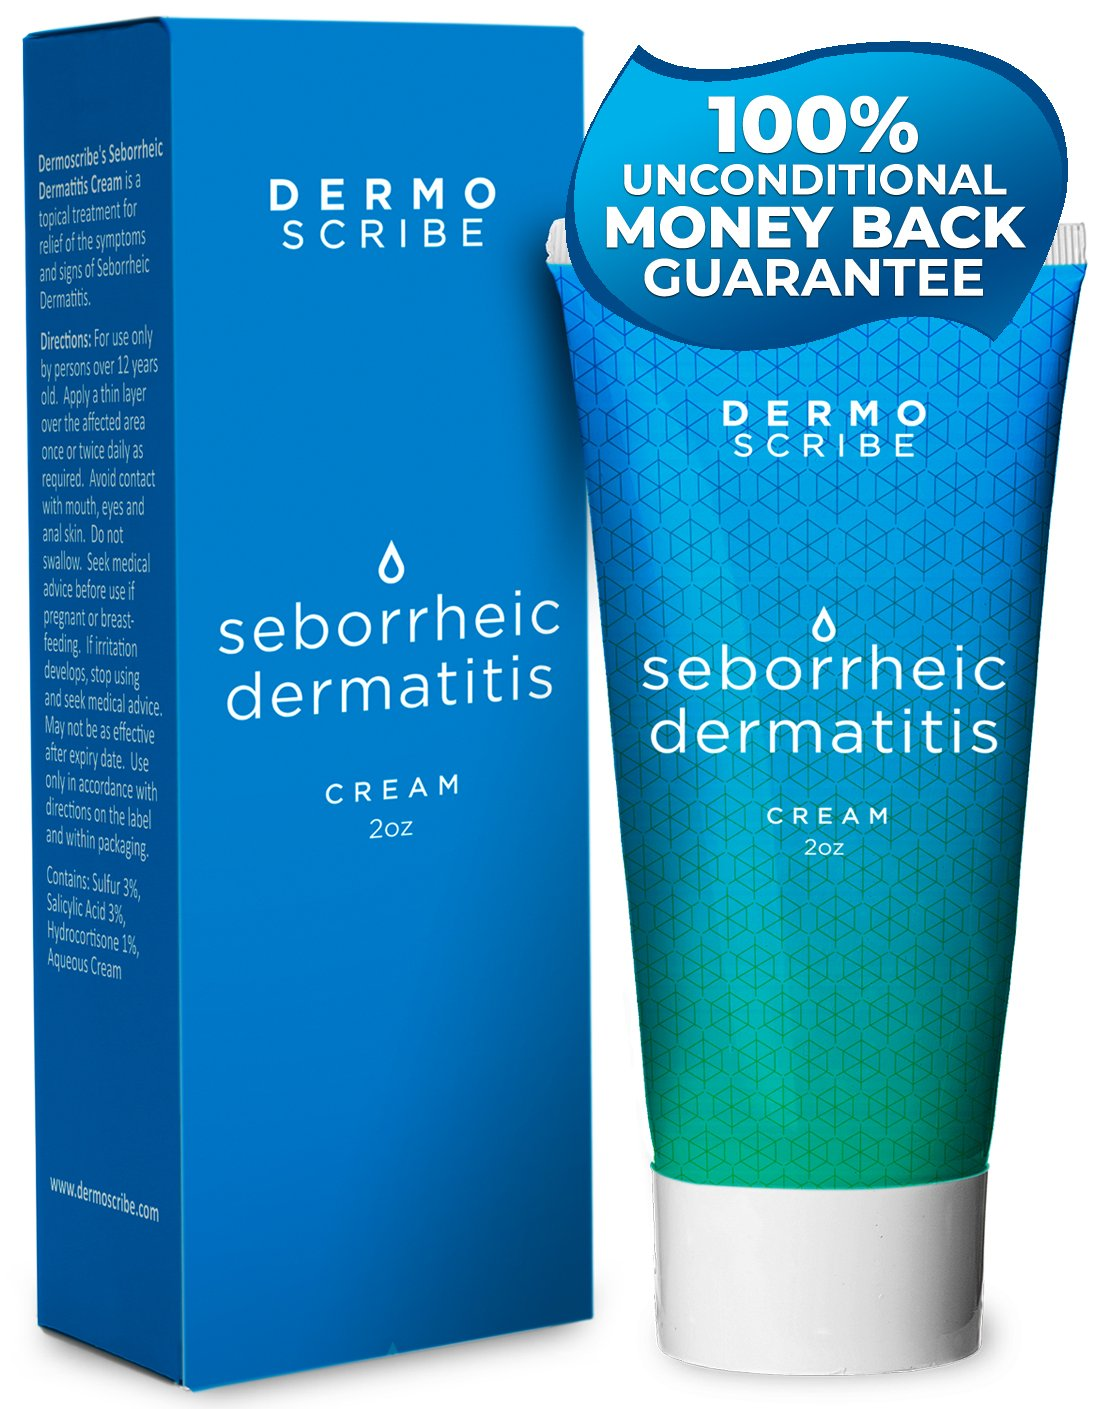 Dermoscribe's Seborrheic Dermatitis 2oz by Dermoscribe